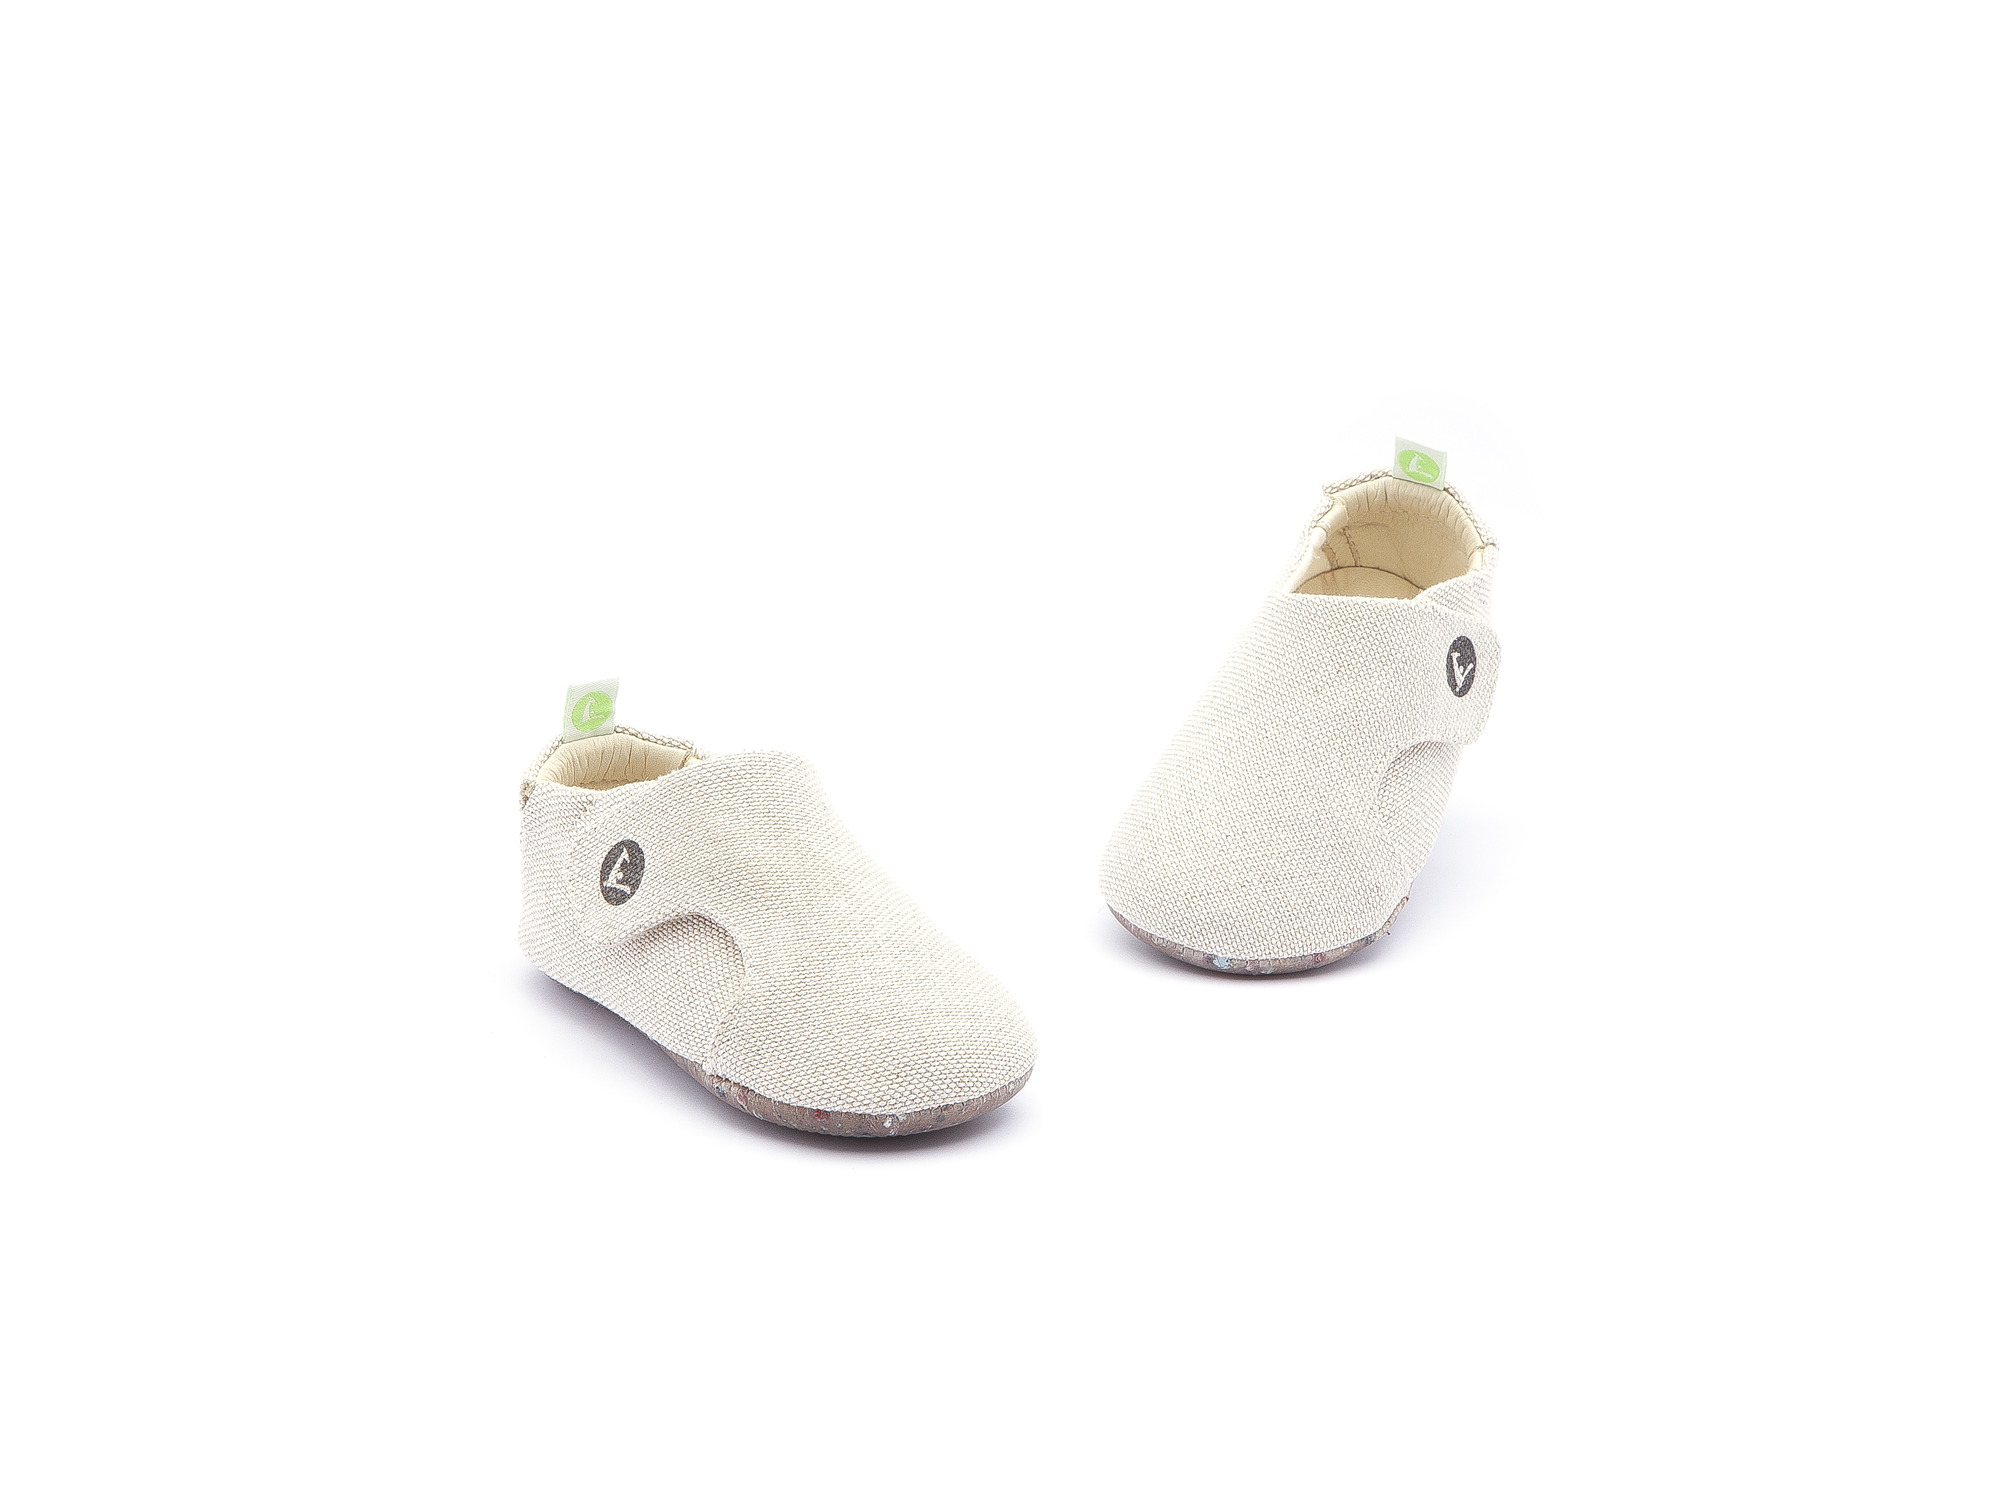 Sneaker Casual Greeny Natural Canvas Baby 0 à 2 anos - 4